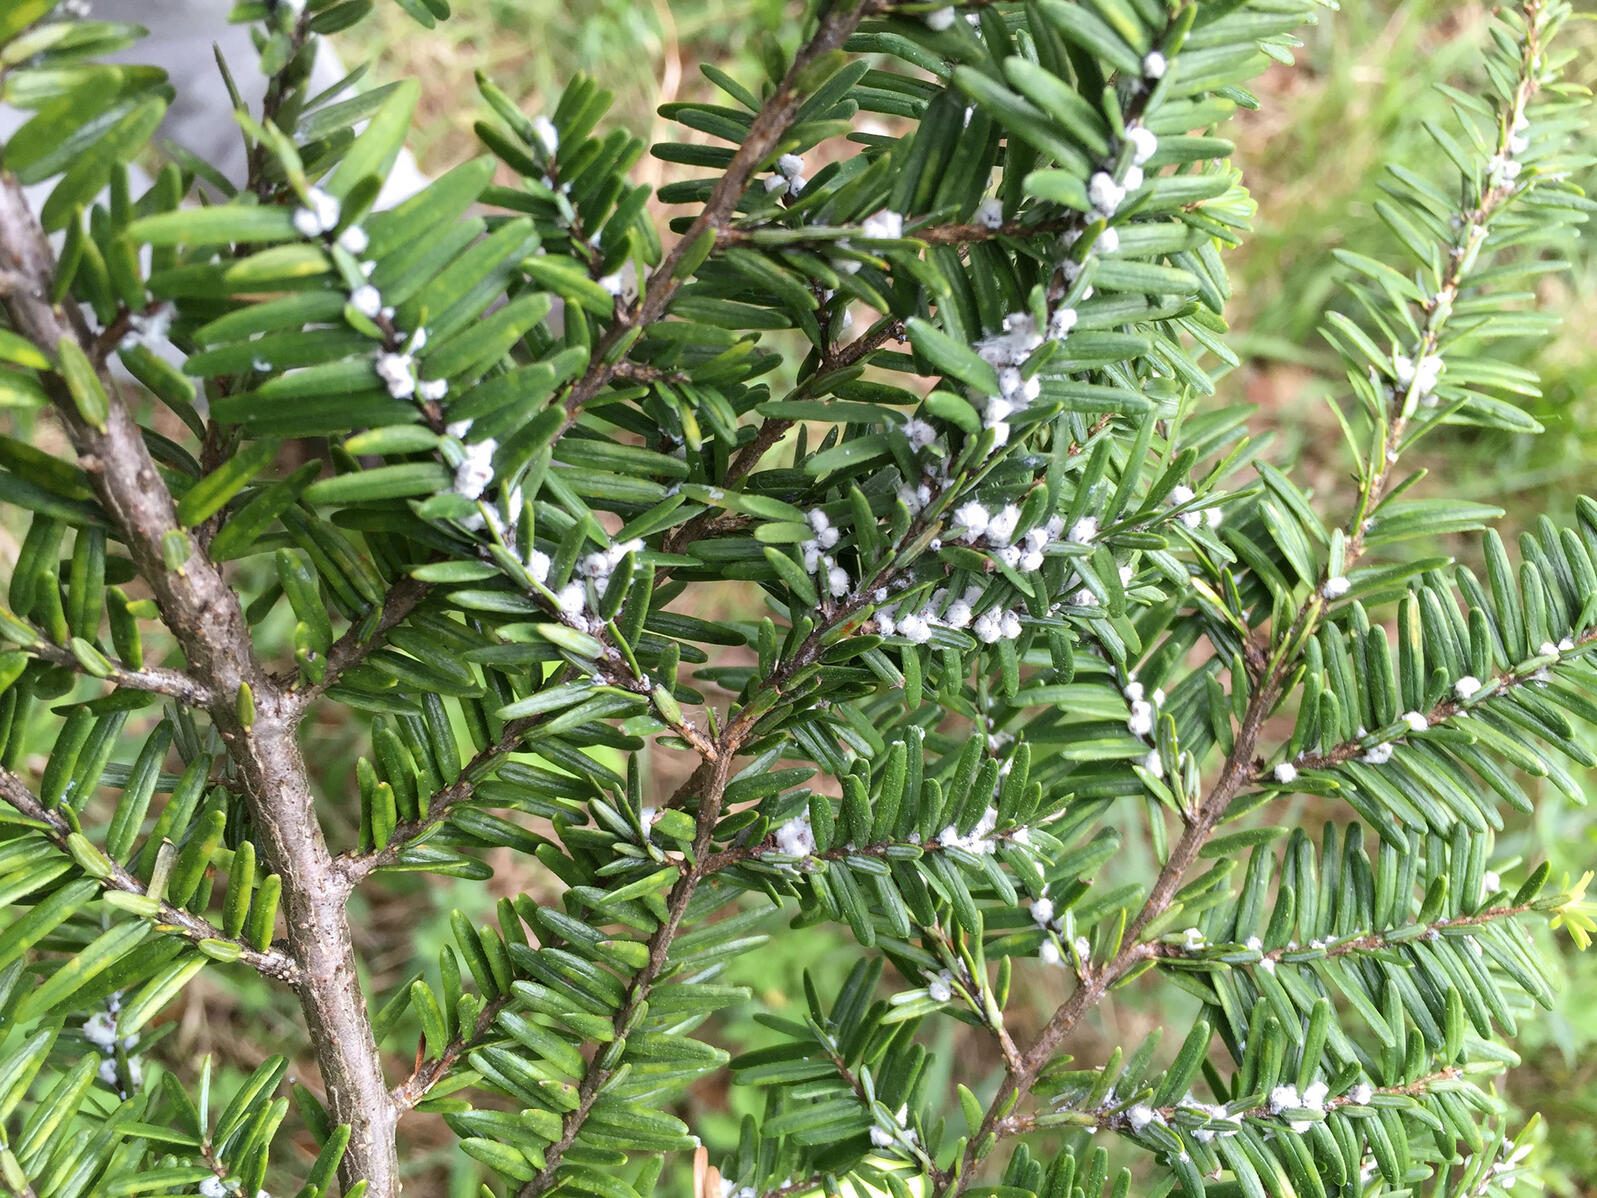 Eggs of the hemlock woody adelgid cloak a host tree in Connecticut. The insect's range has slowly been expanding in the Eastern United States, and there may be a few different culprits behind it. Morgan Tingley